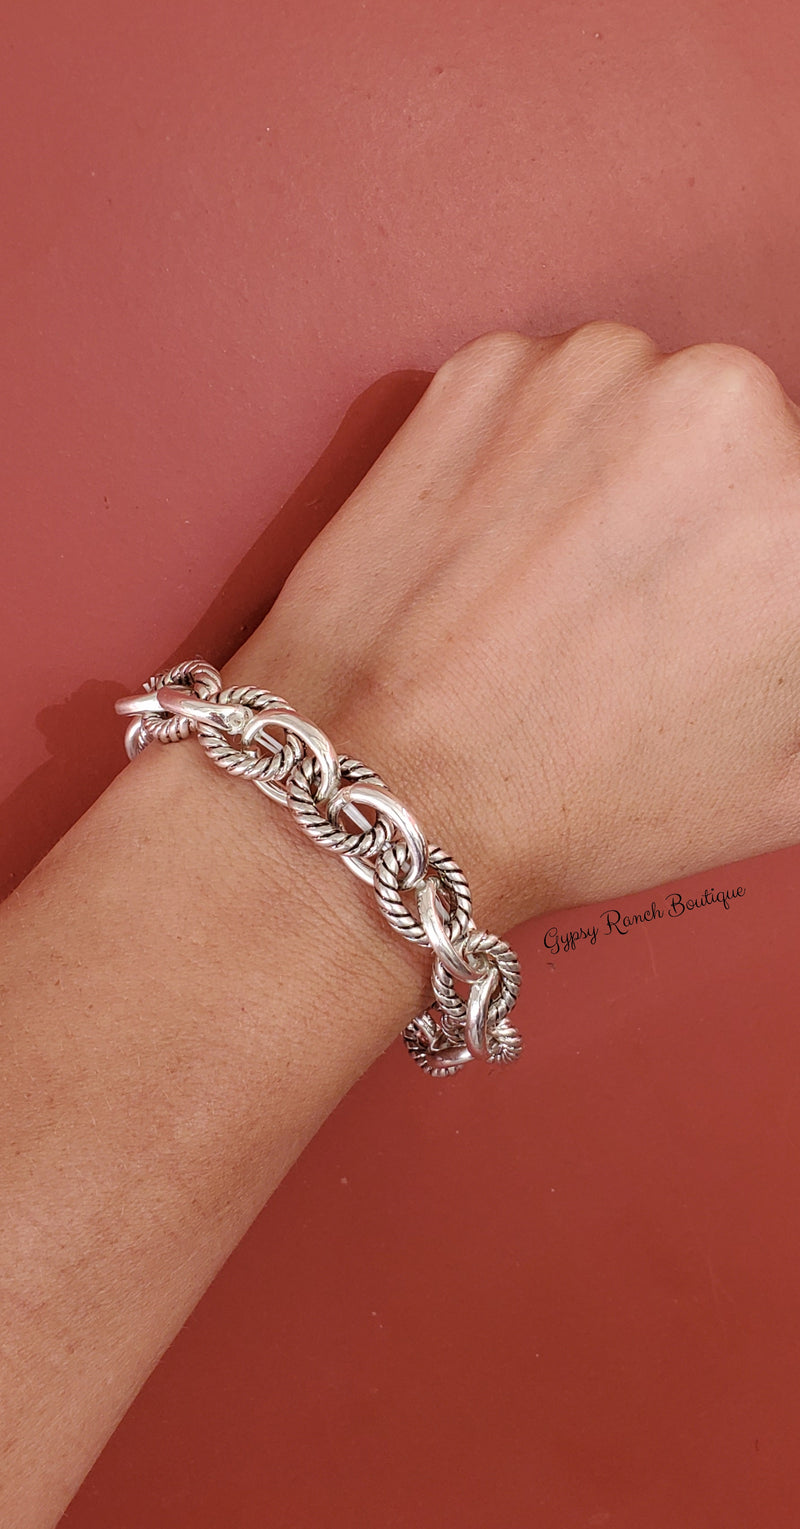 Chain Stretchy Bracelet